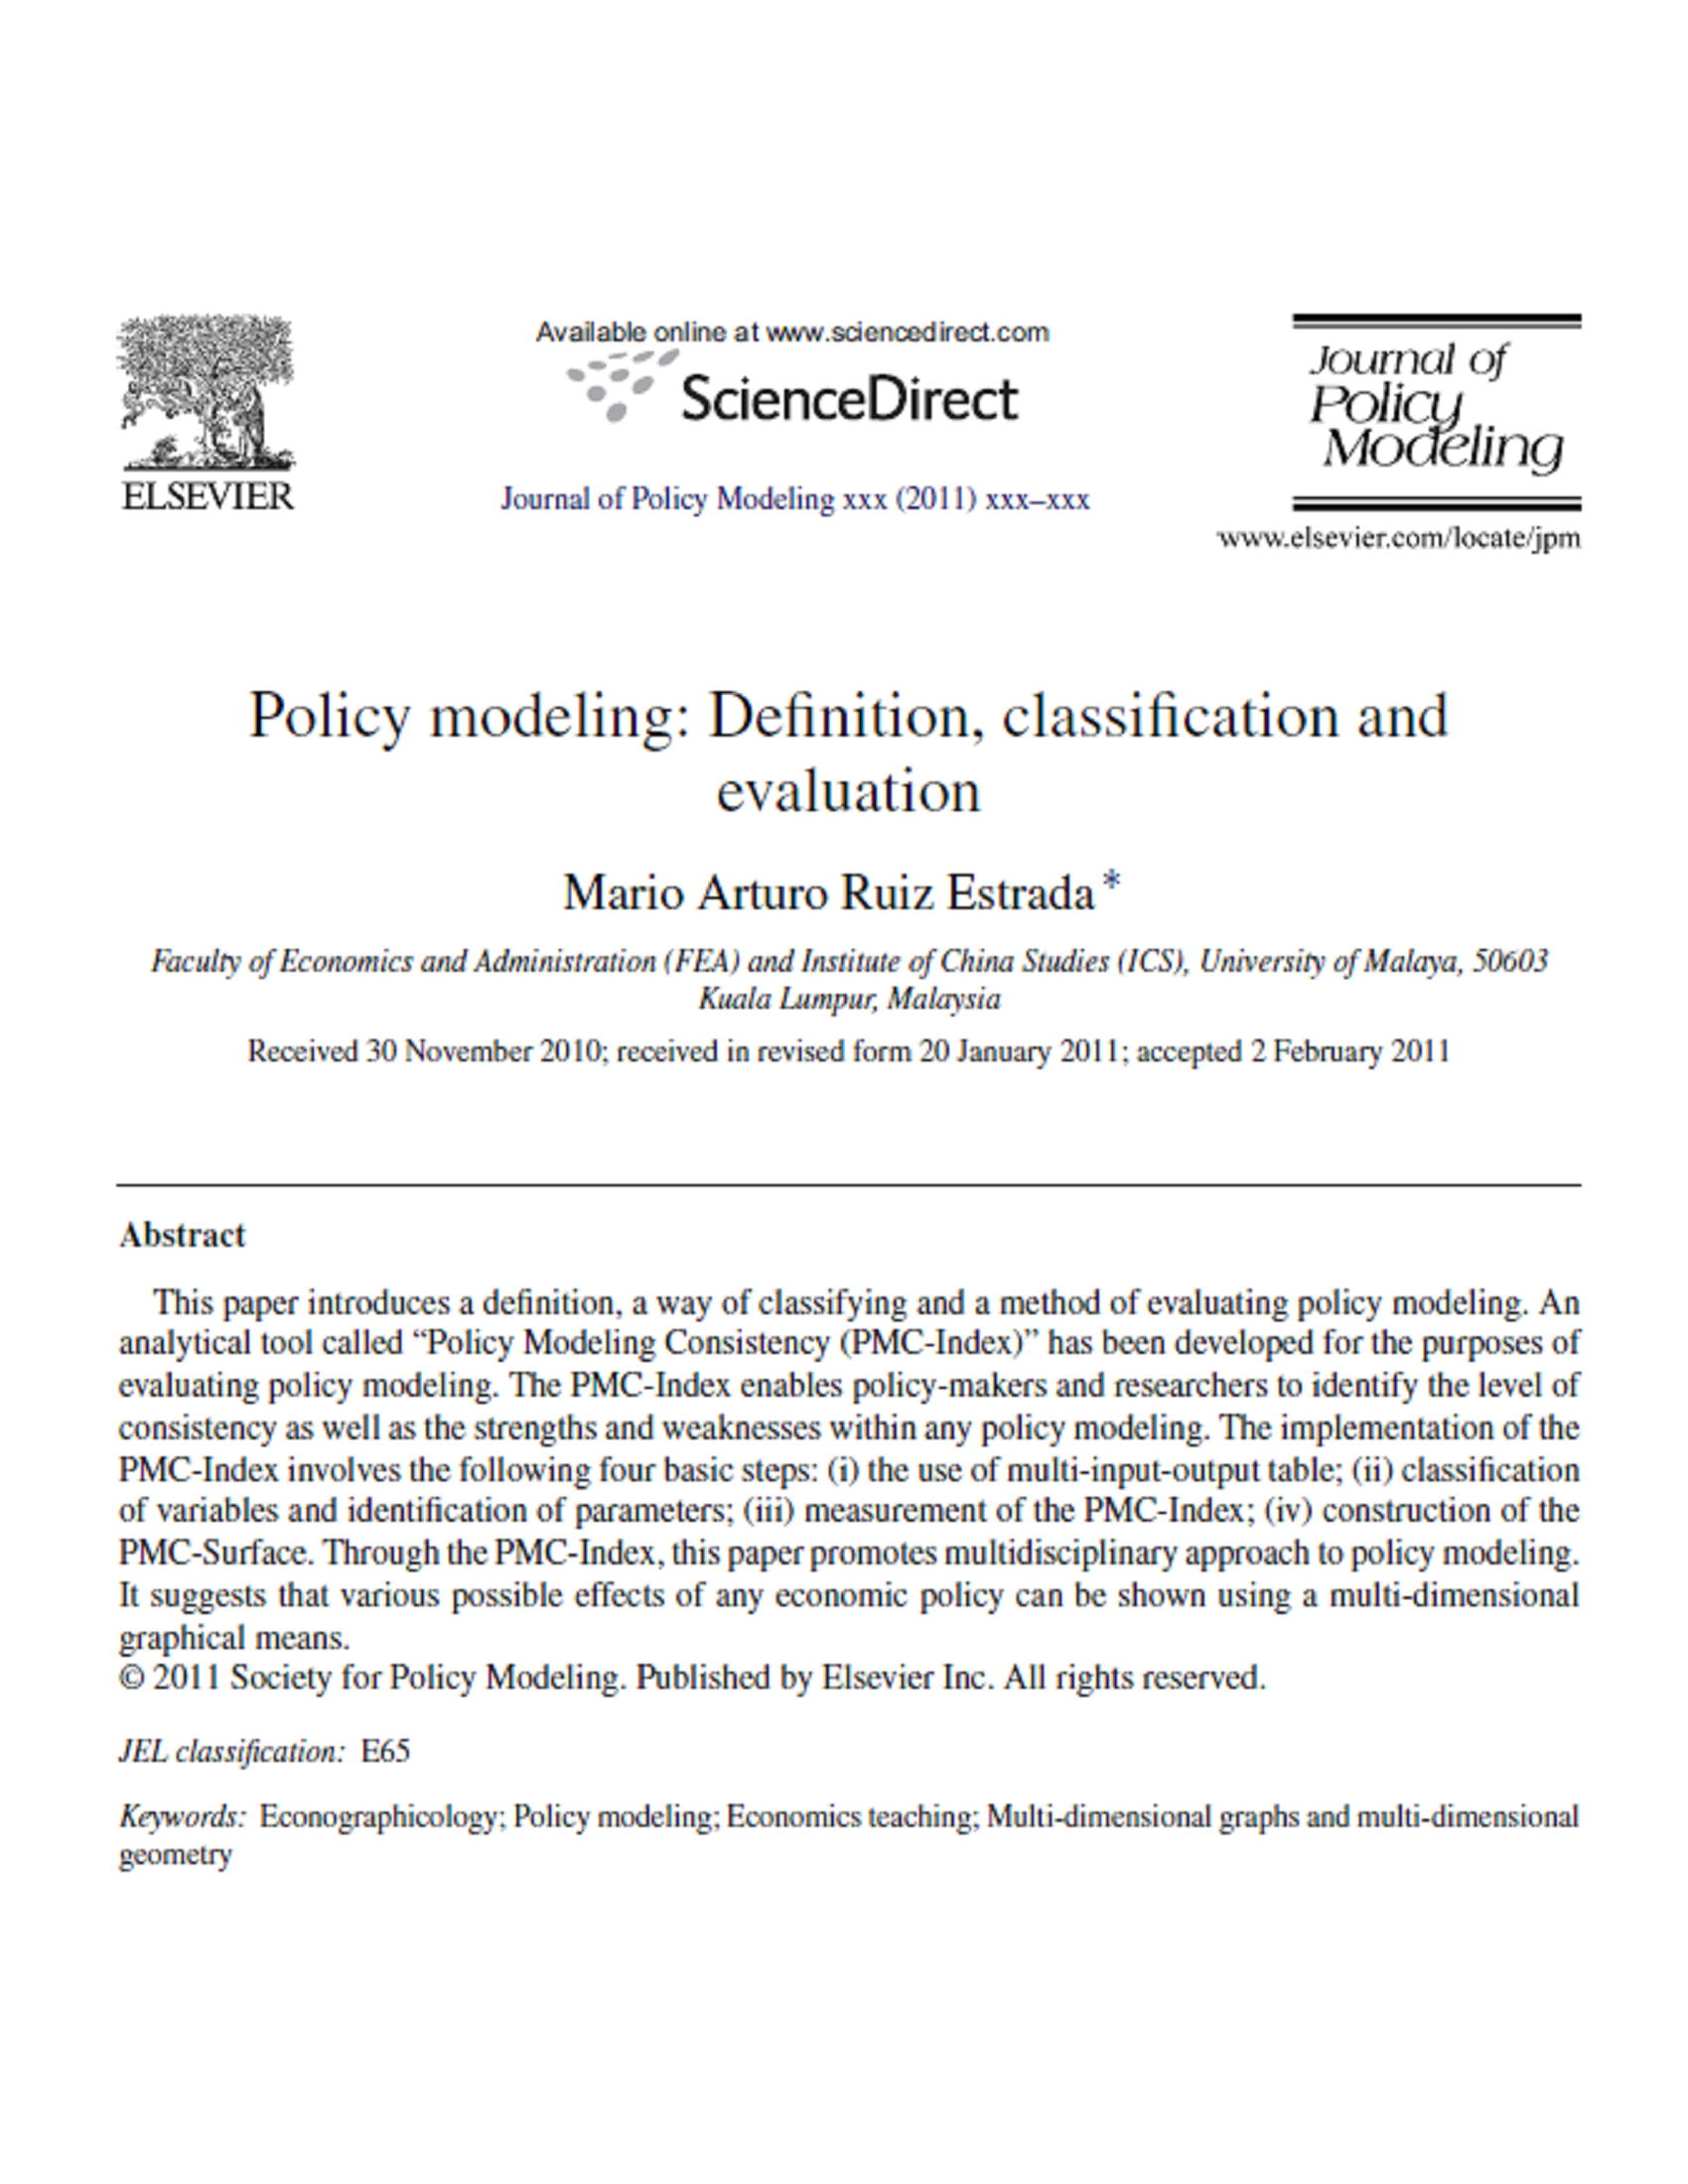 Policymodeling:Definition,classificationand evaluation 14